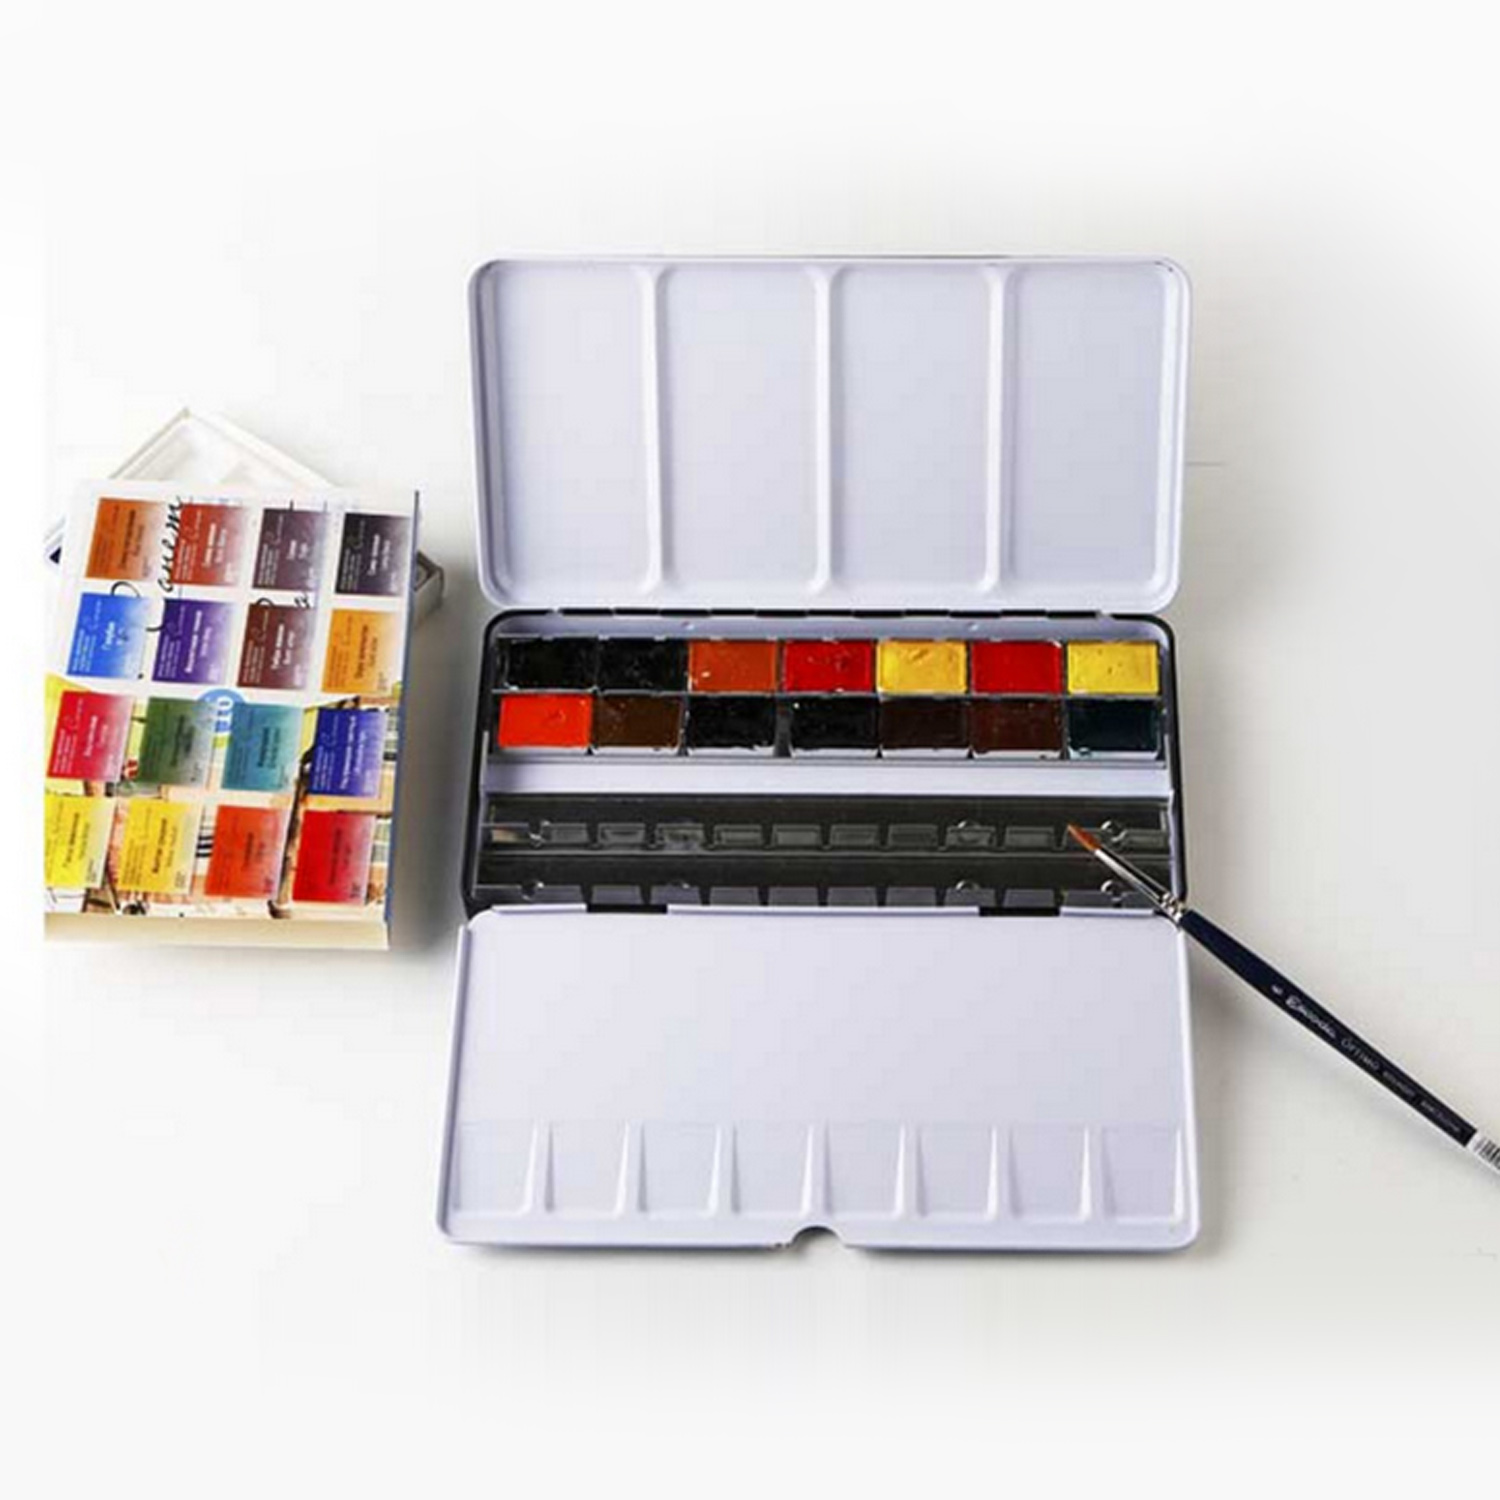 48 Gird Empty Watercolor Tins Pans Palette Paint Case Water Color Box For Children Artist Student Drawing Painting Supplies